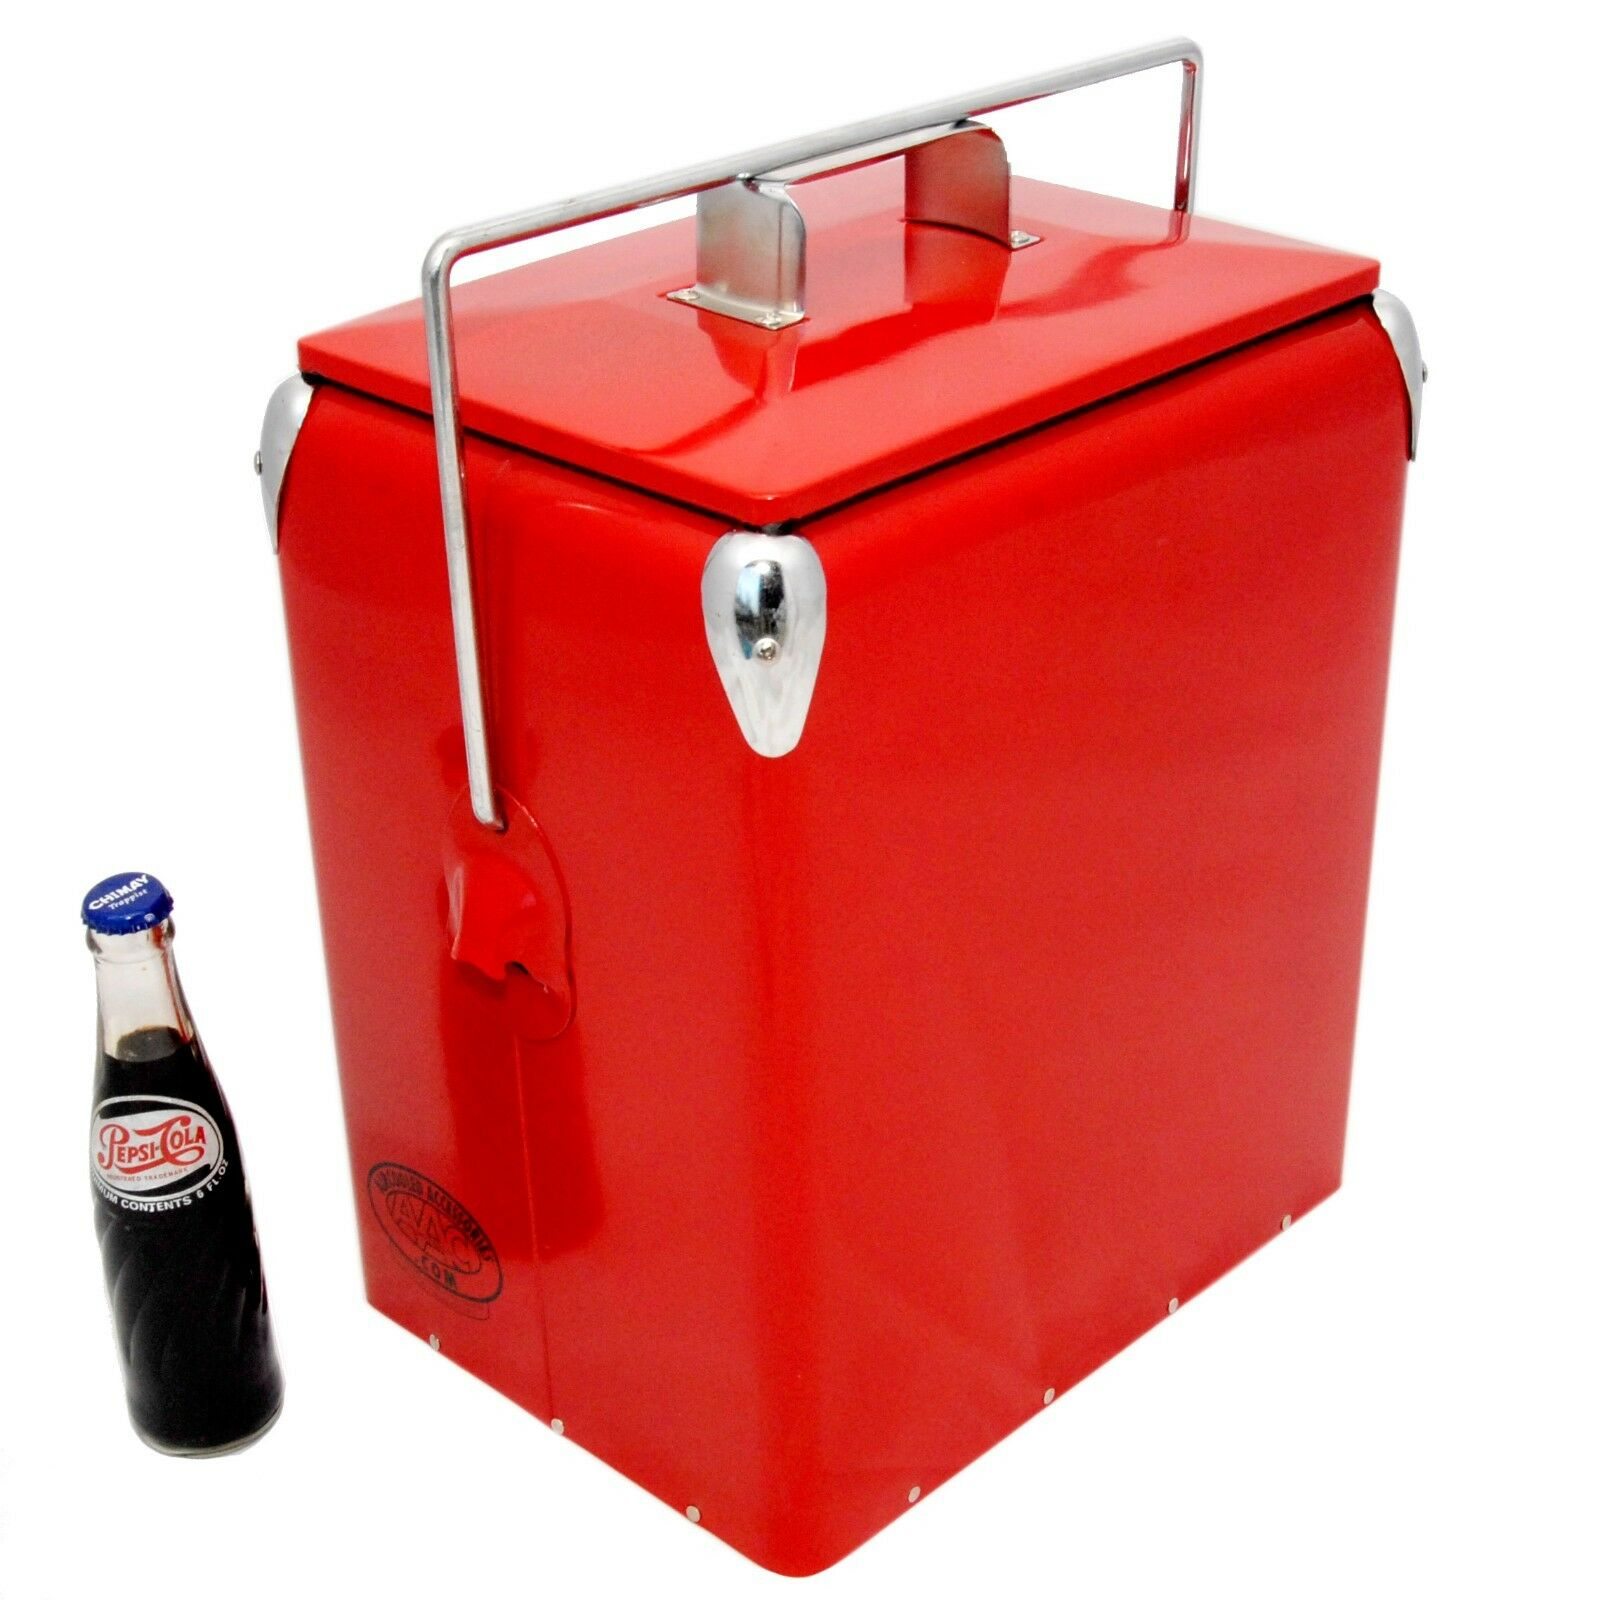 Retro Cool Box Monochrome rot Cooler 17L Vintage Cooler Wedding Gift AAC